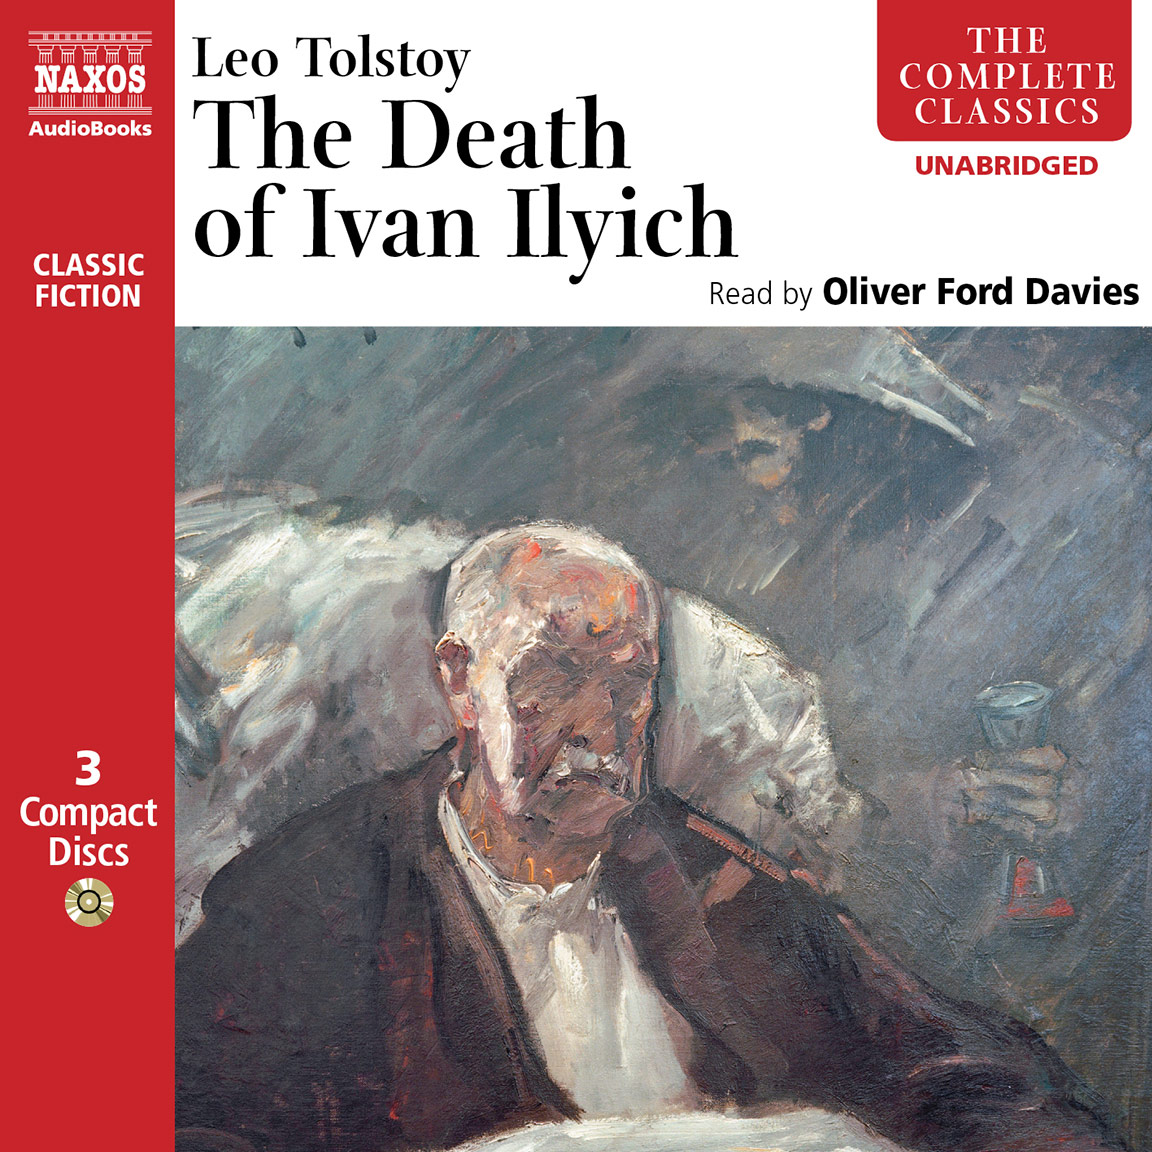 the death of ivan ilyich essay Open document below is an essay on death of ivan ilych from anti essays, your source for research papers, essays, and term paper examples.